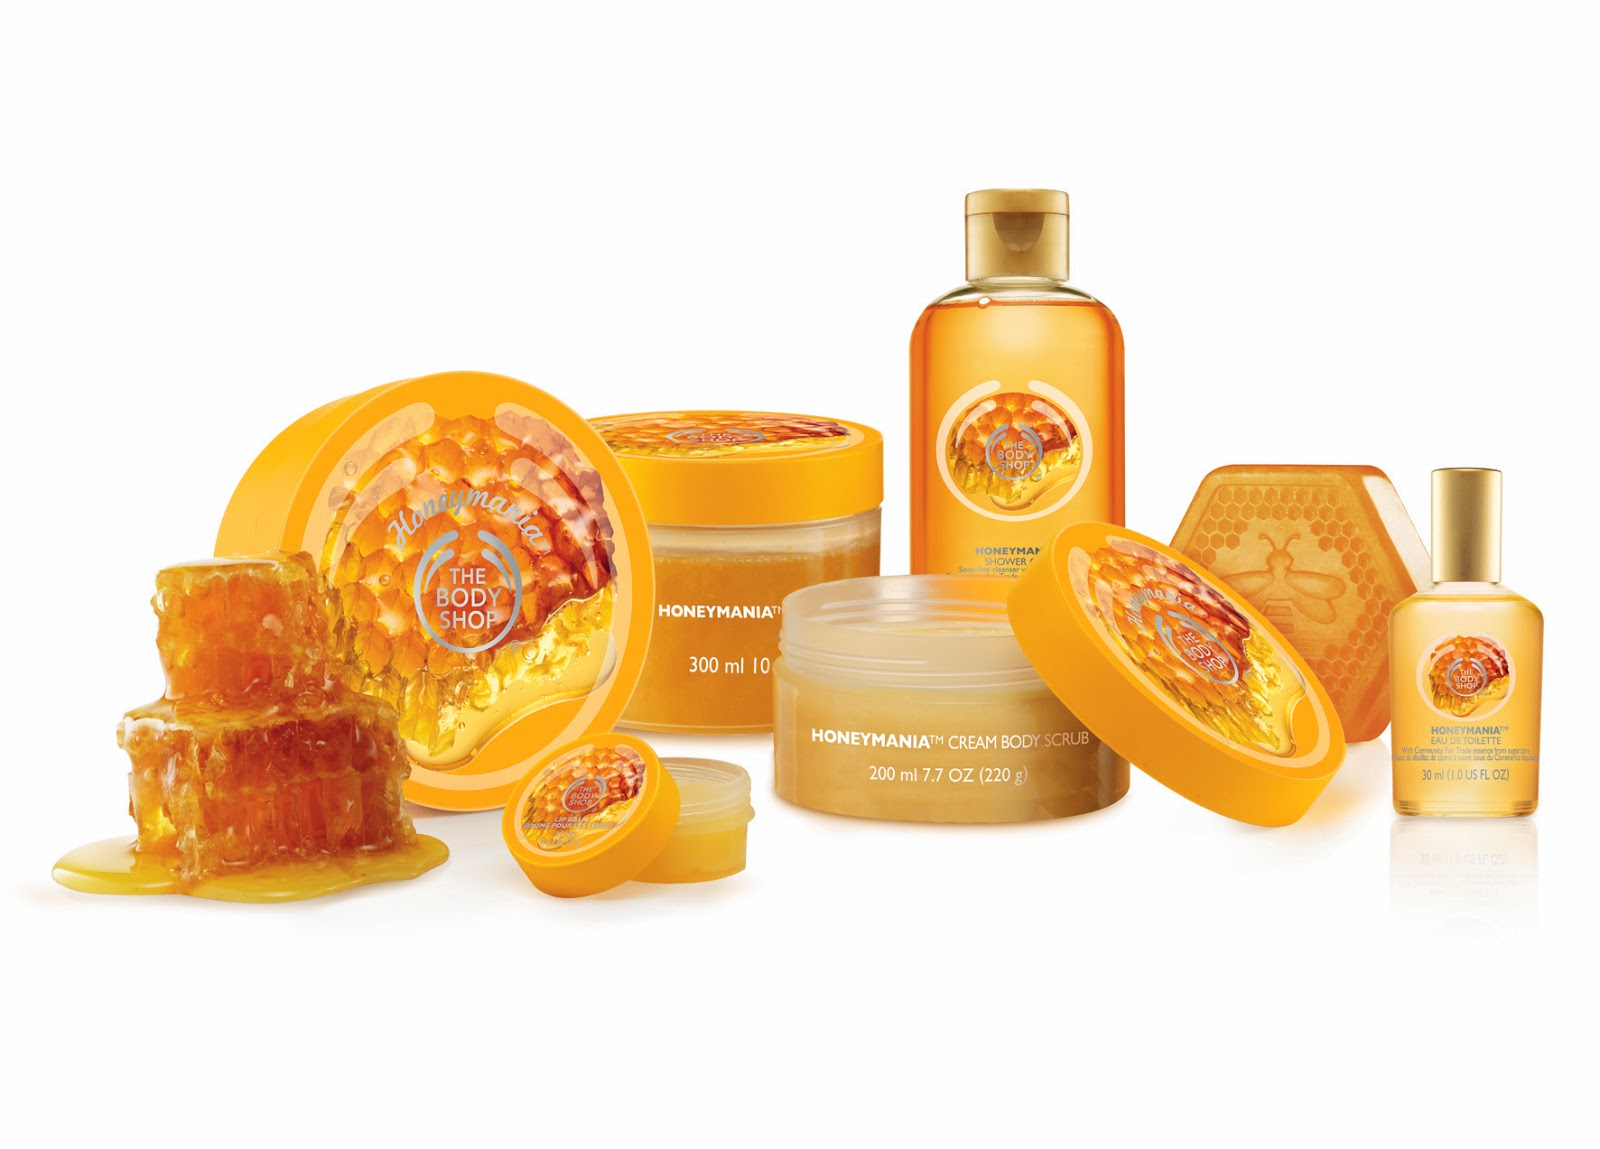 PR- The Body Shop's New HoneyMania Range